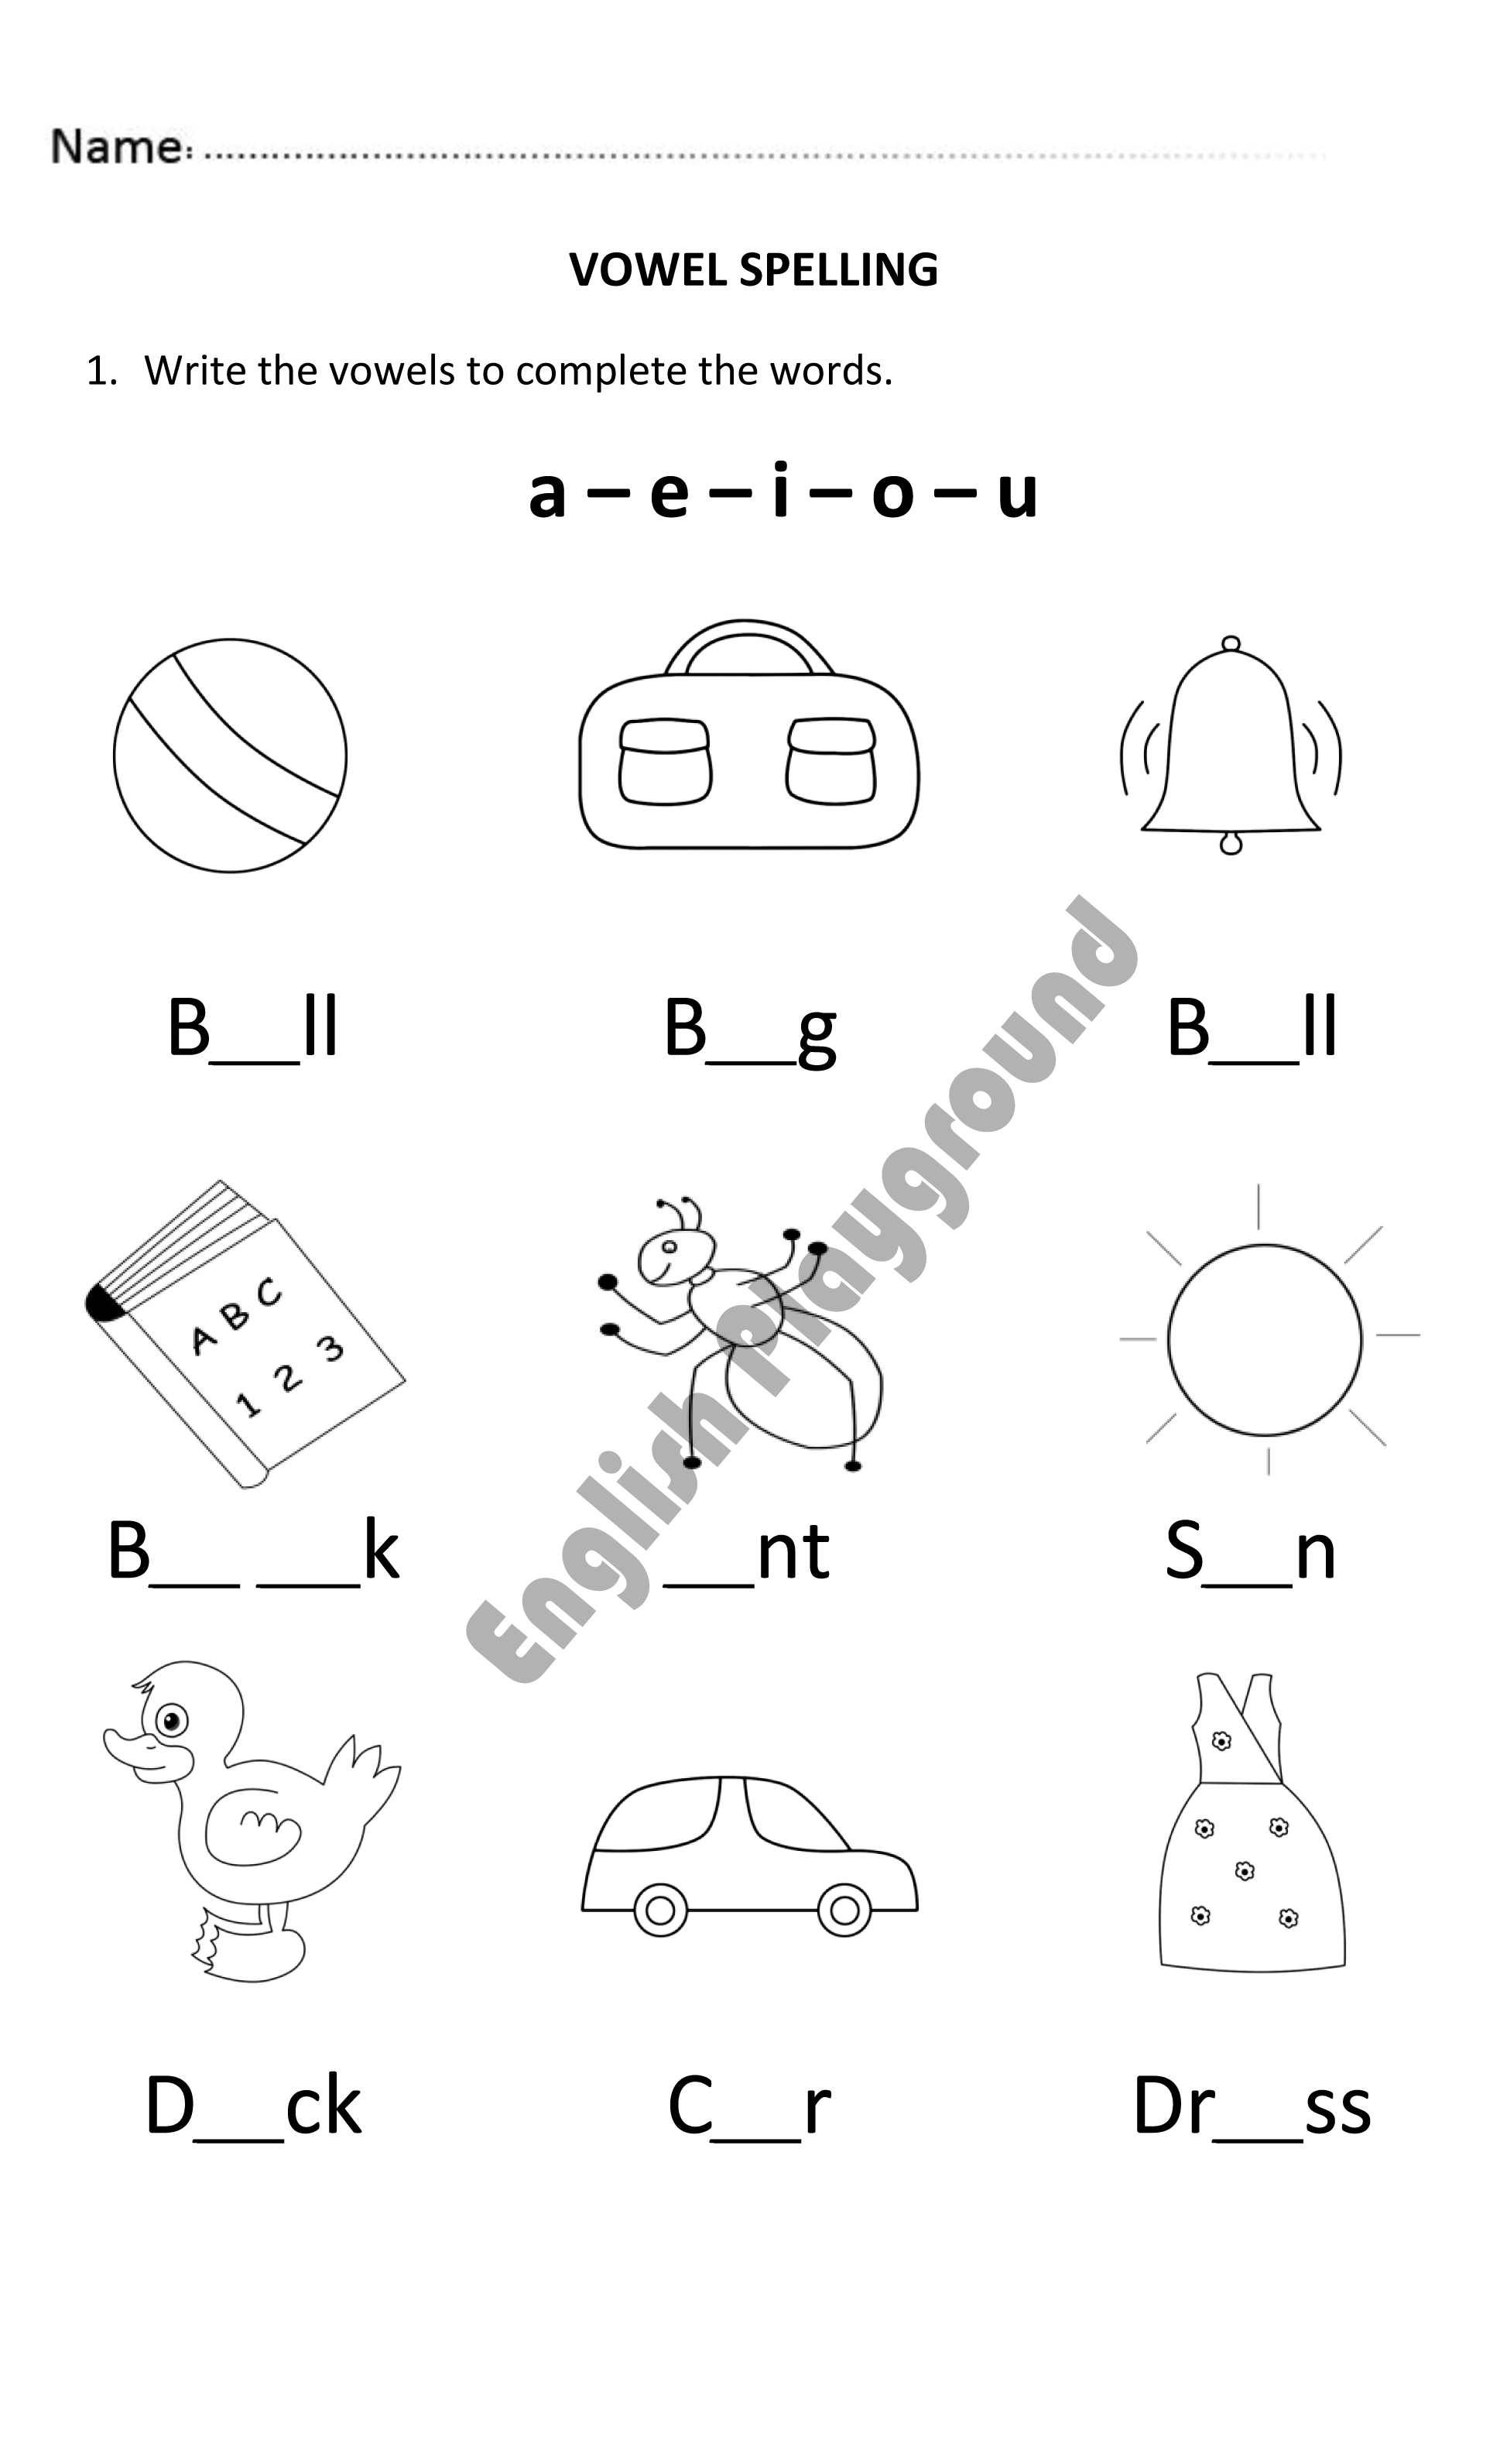 Vowel Spelling for Year 1 Students | Spelling worksheets ...